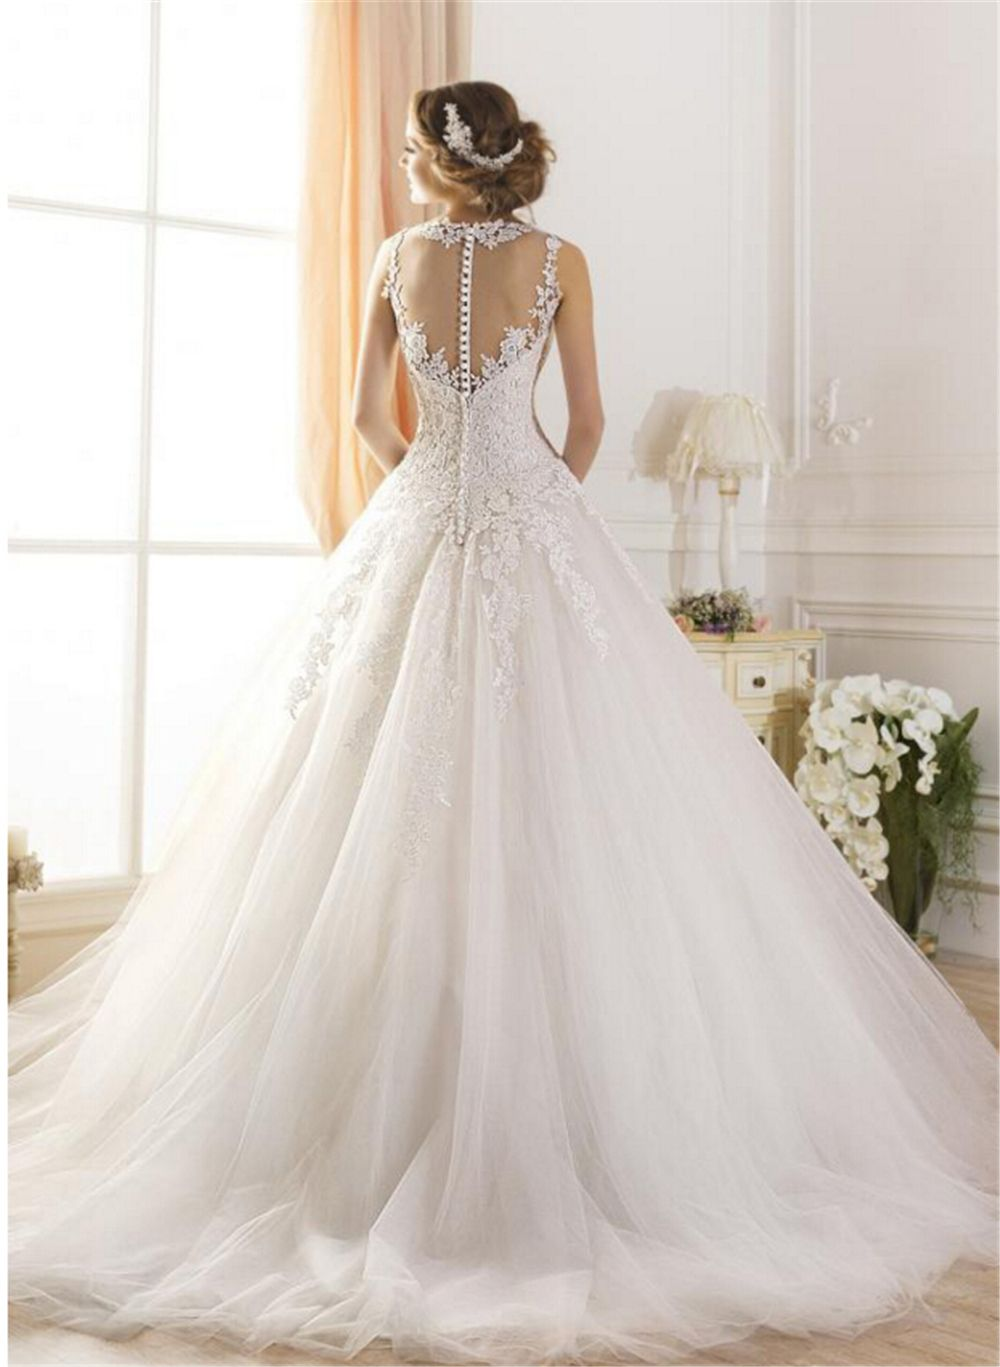 Fluffy wedding dresses    White Ivory Lace Tulle Wedding Dresses for brides plus